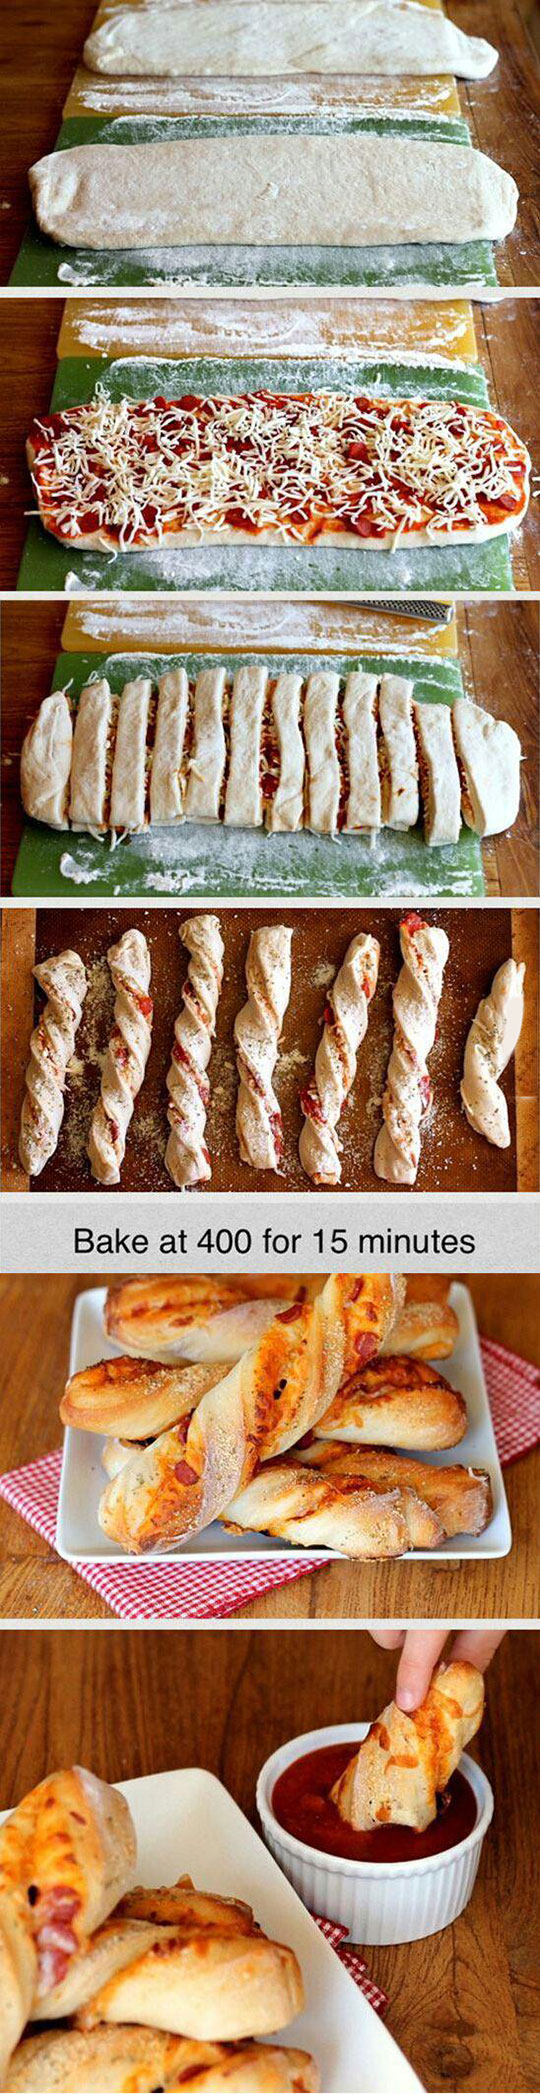 baking-pizza-sticks